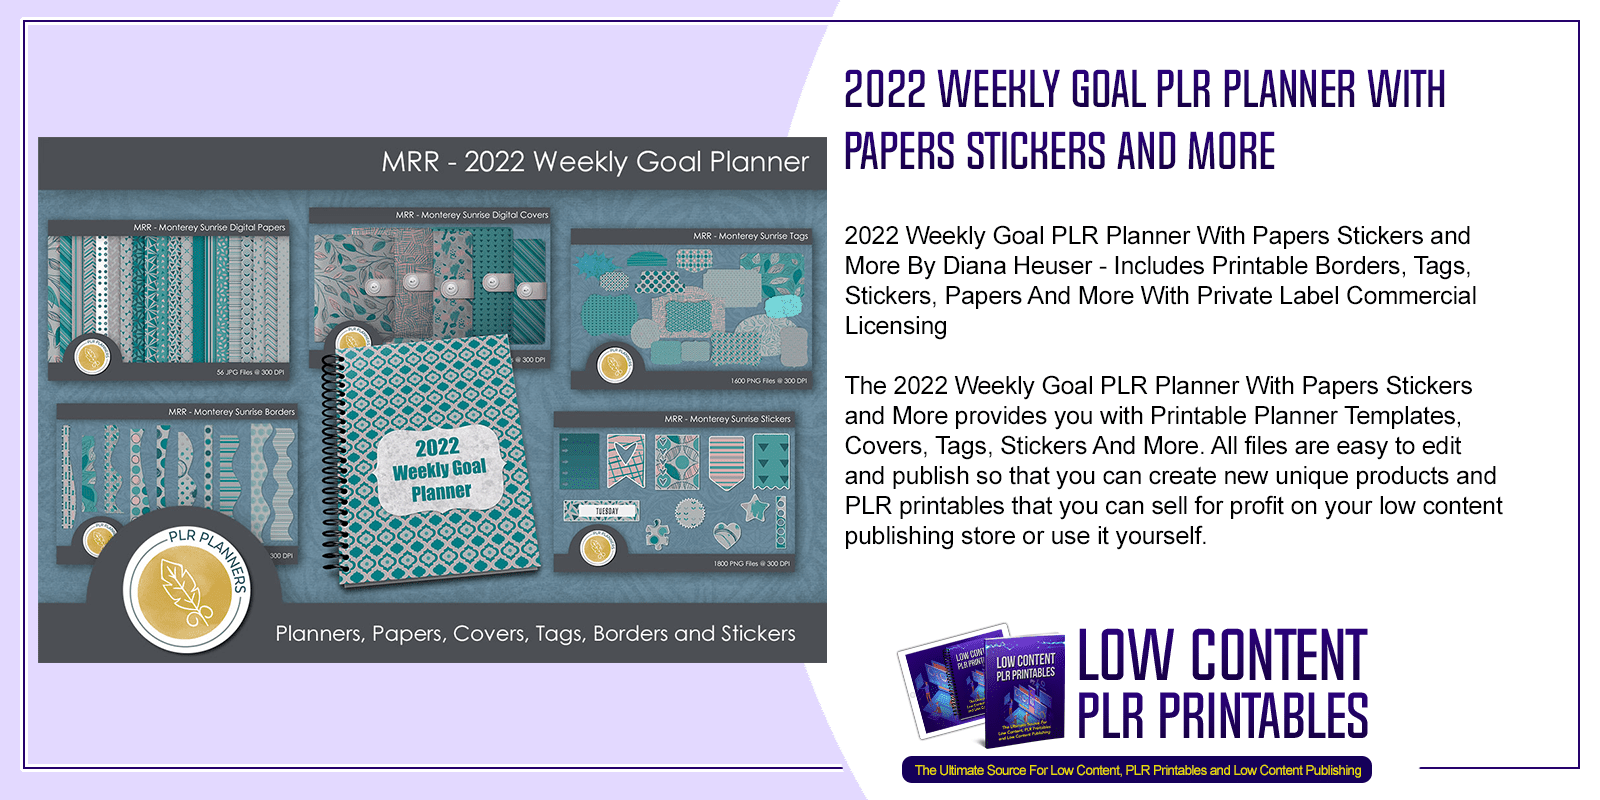 2022 Weekly Goal PLR Planner With Papers Stickers and More